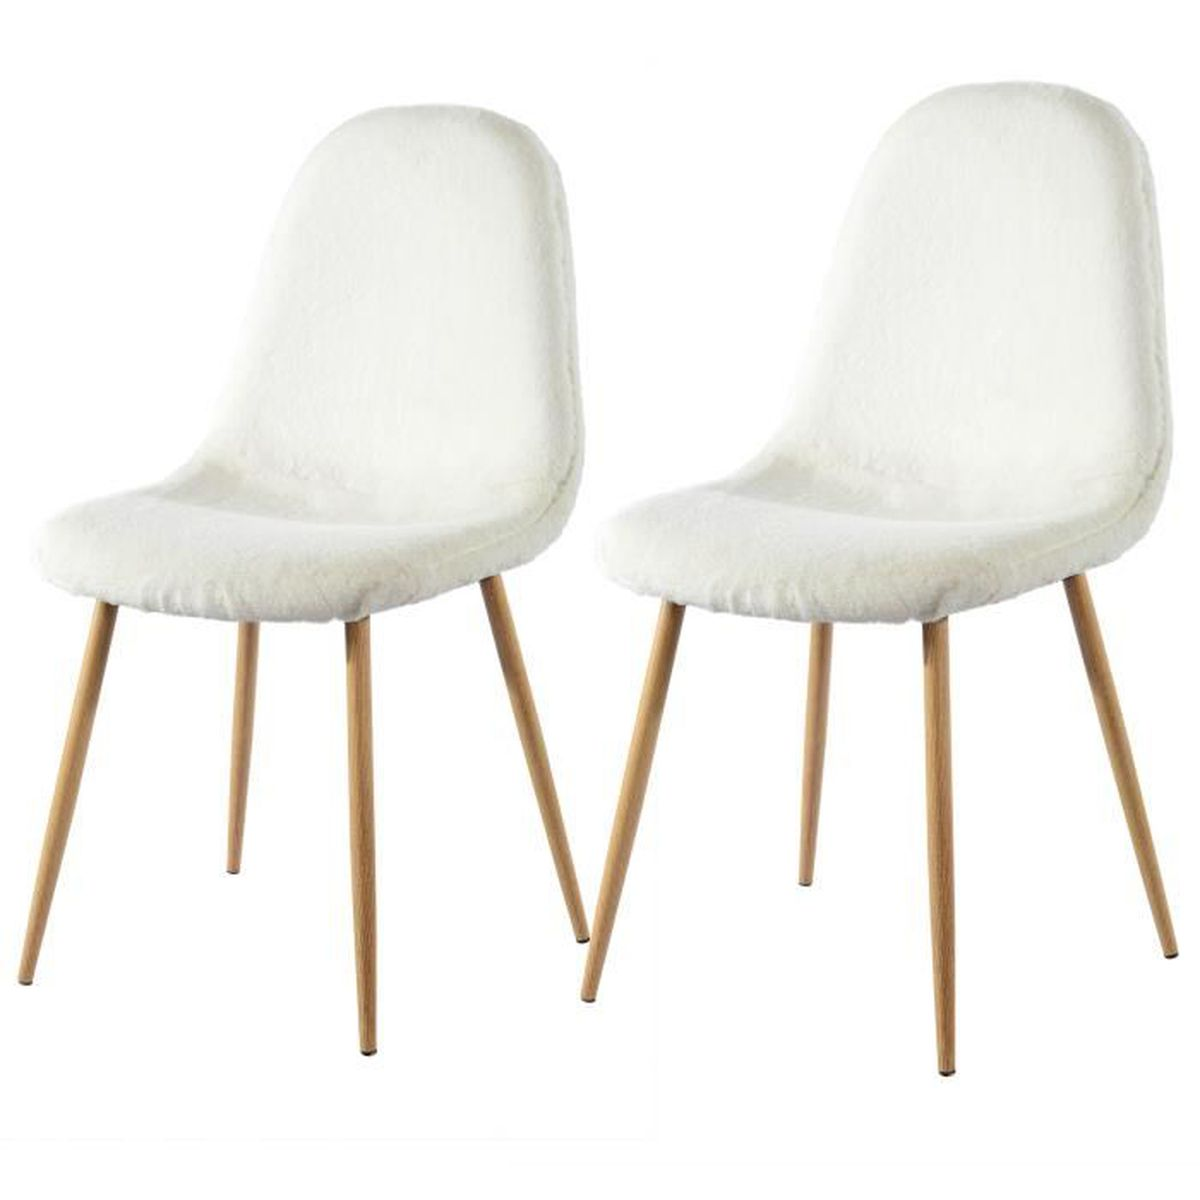 chaise pilou blanche lot de 2 achat vente chaise blanc cdiscount. Black Bedroom Furniture Sets. Home Design Ideas